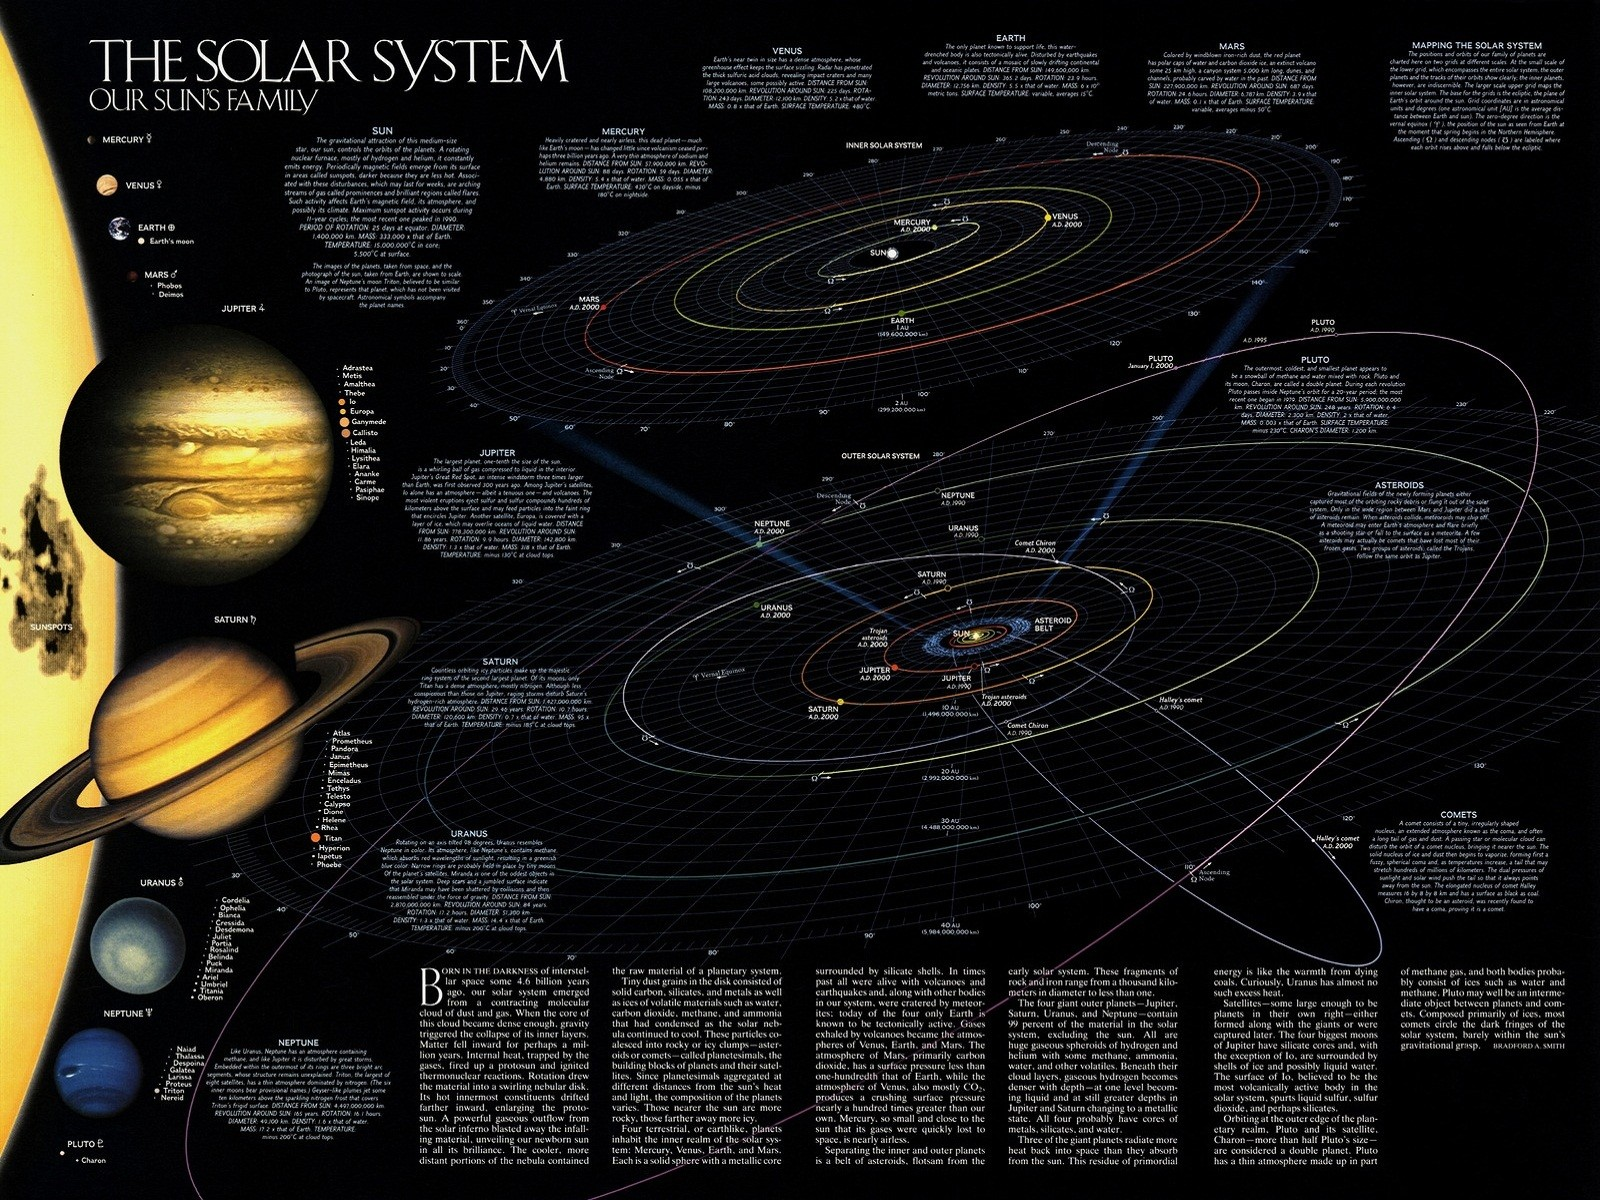 General 1600x1200 Solar System space planet information diagrams